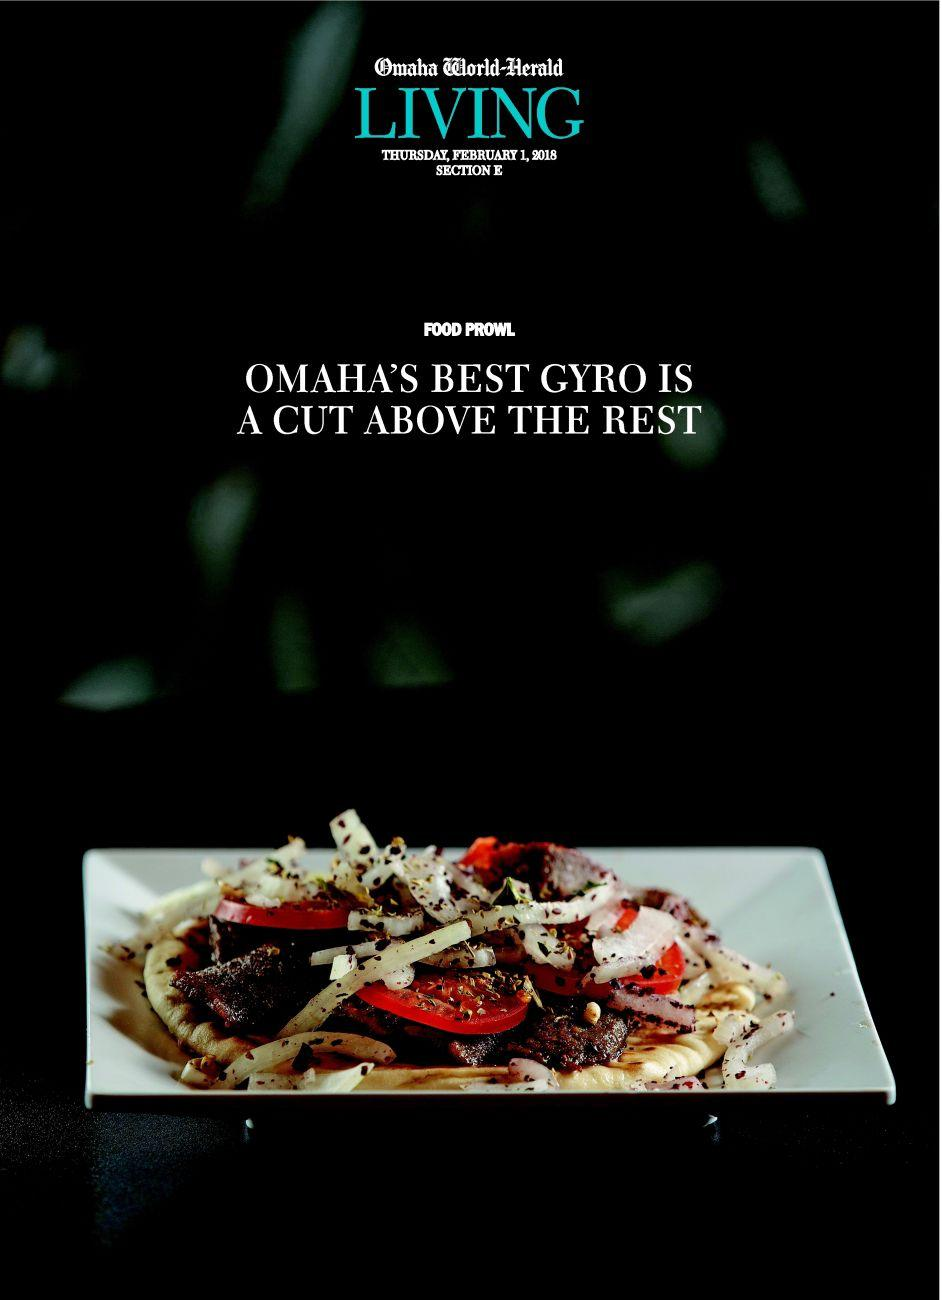 OMAHA'S BEST GYRO IS A CUT ABOVE THE REST